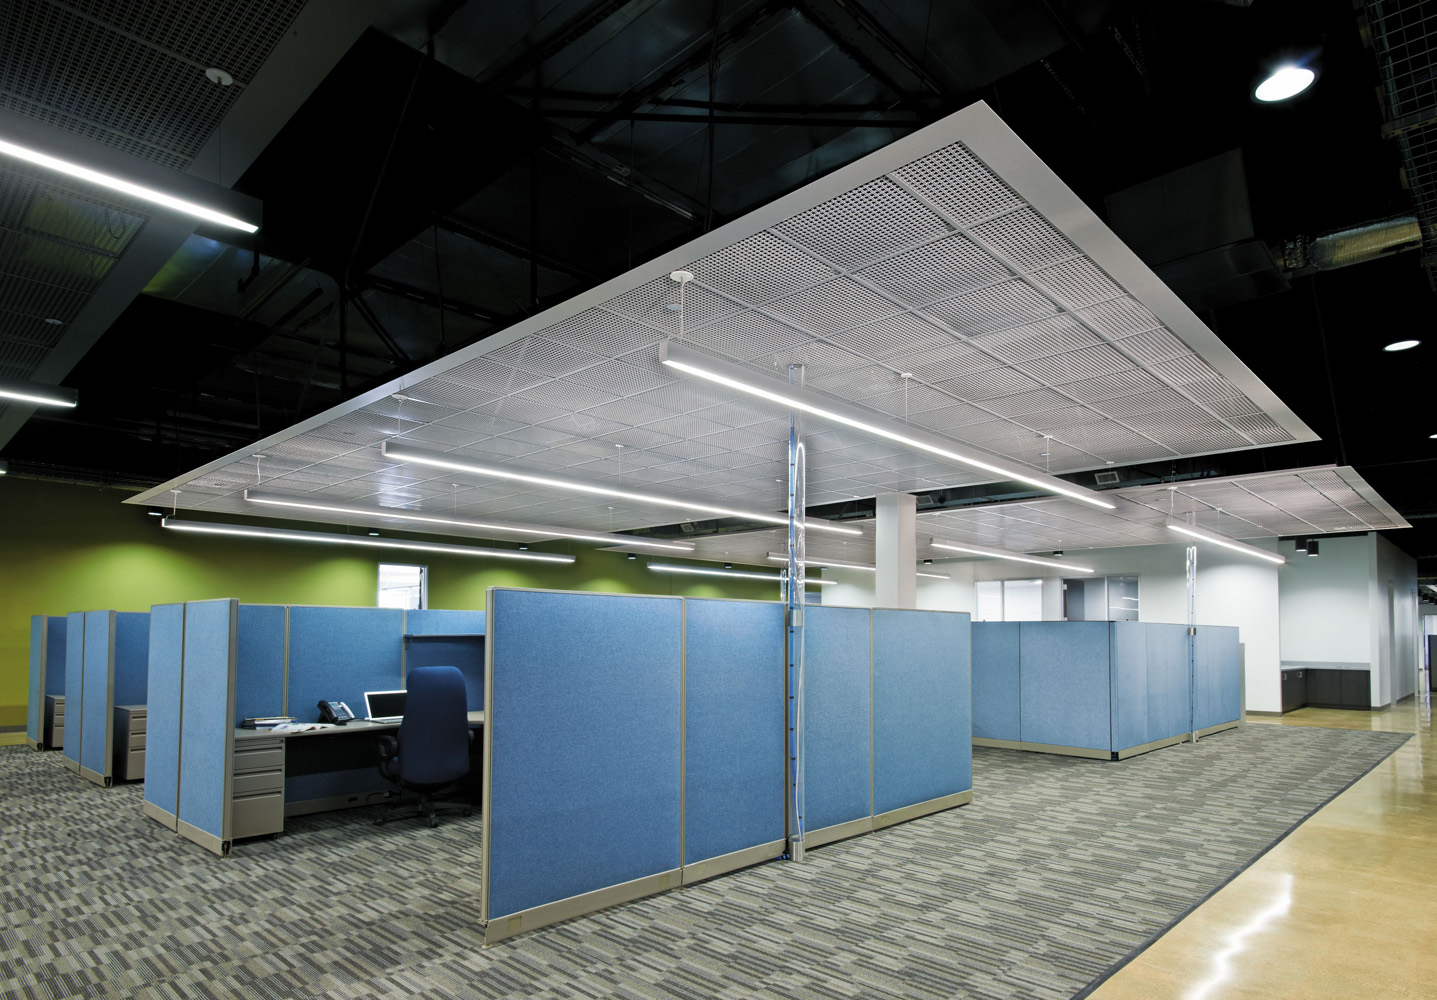 Specialty Ceiling Supplier In Nj Kamco Supply Of Nj Llc